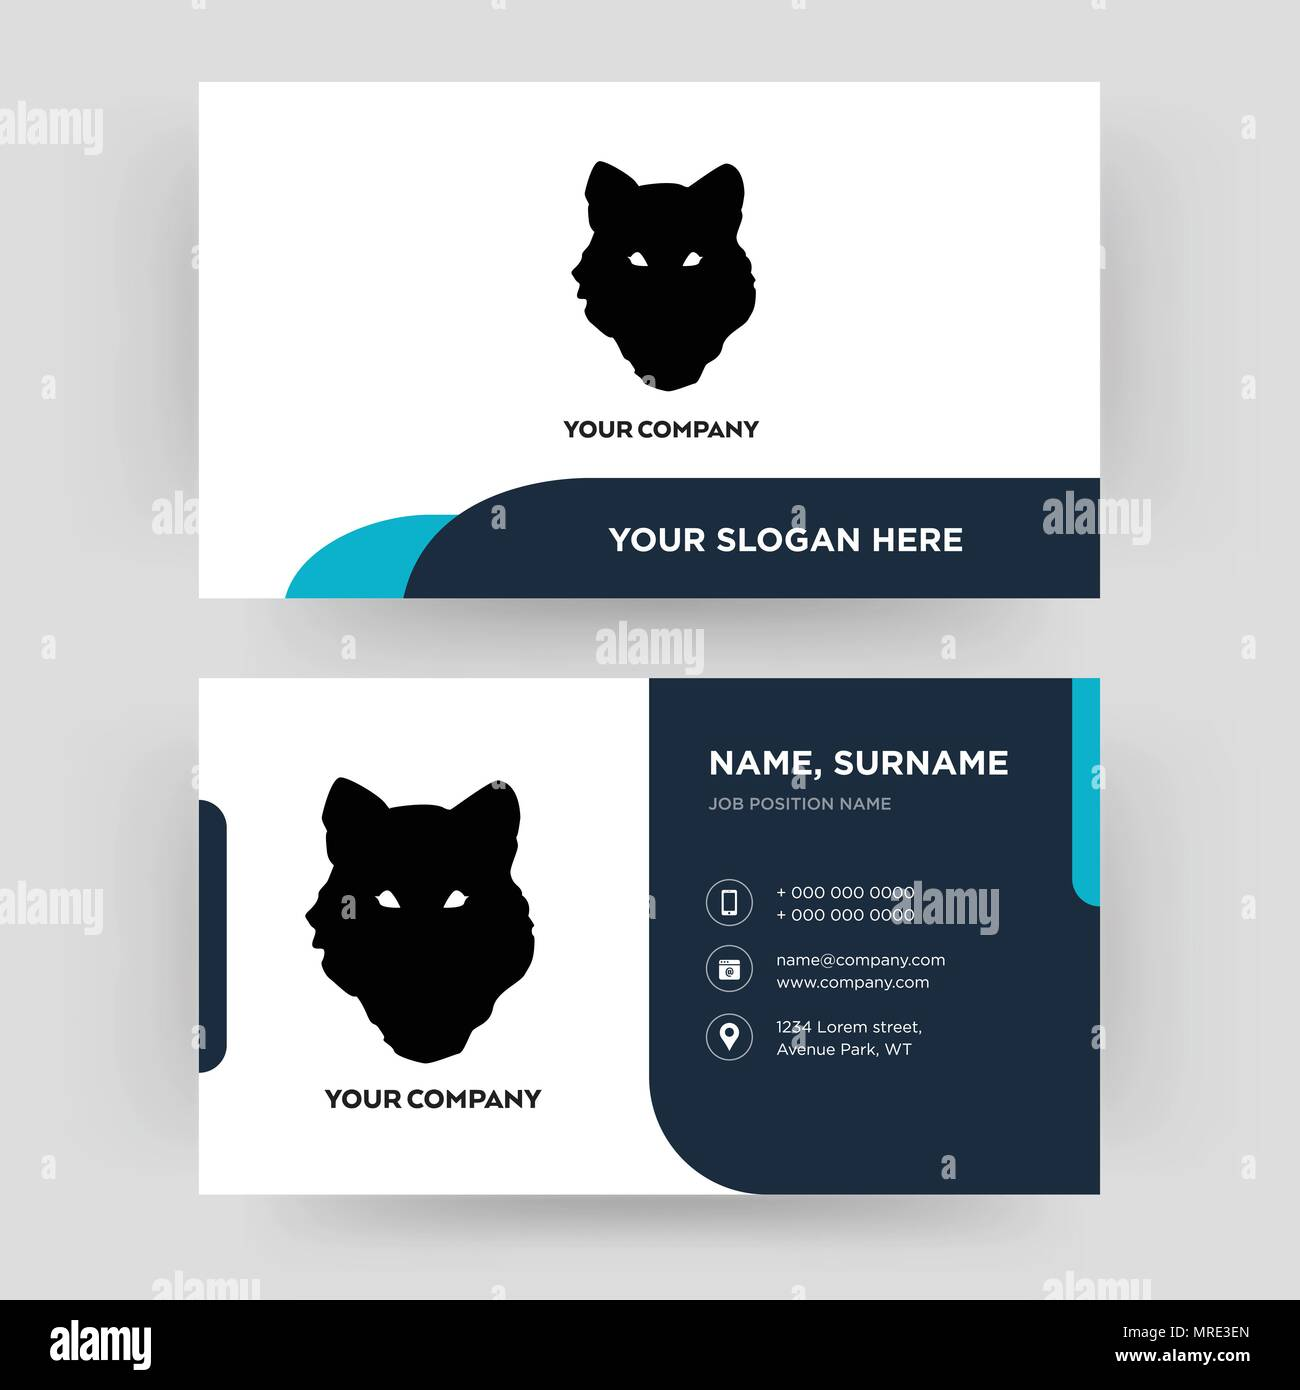 wolf face business card design template visiting for your company